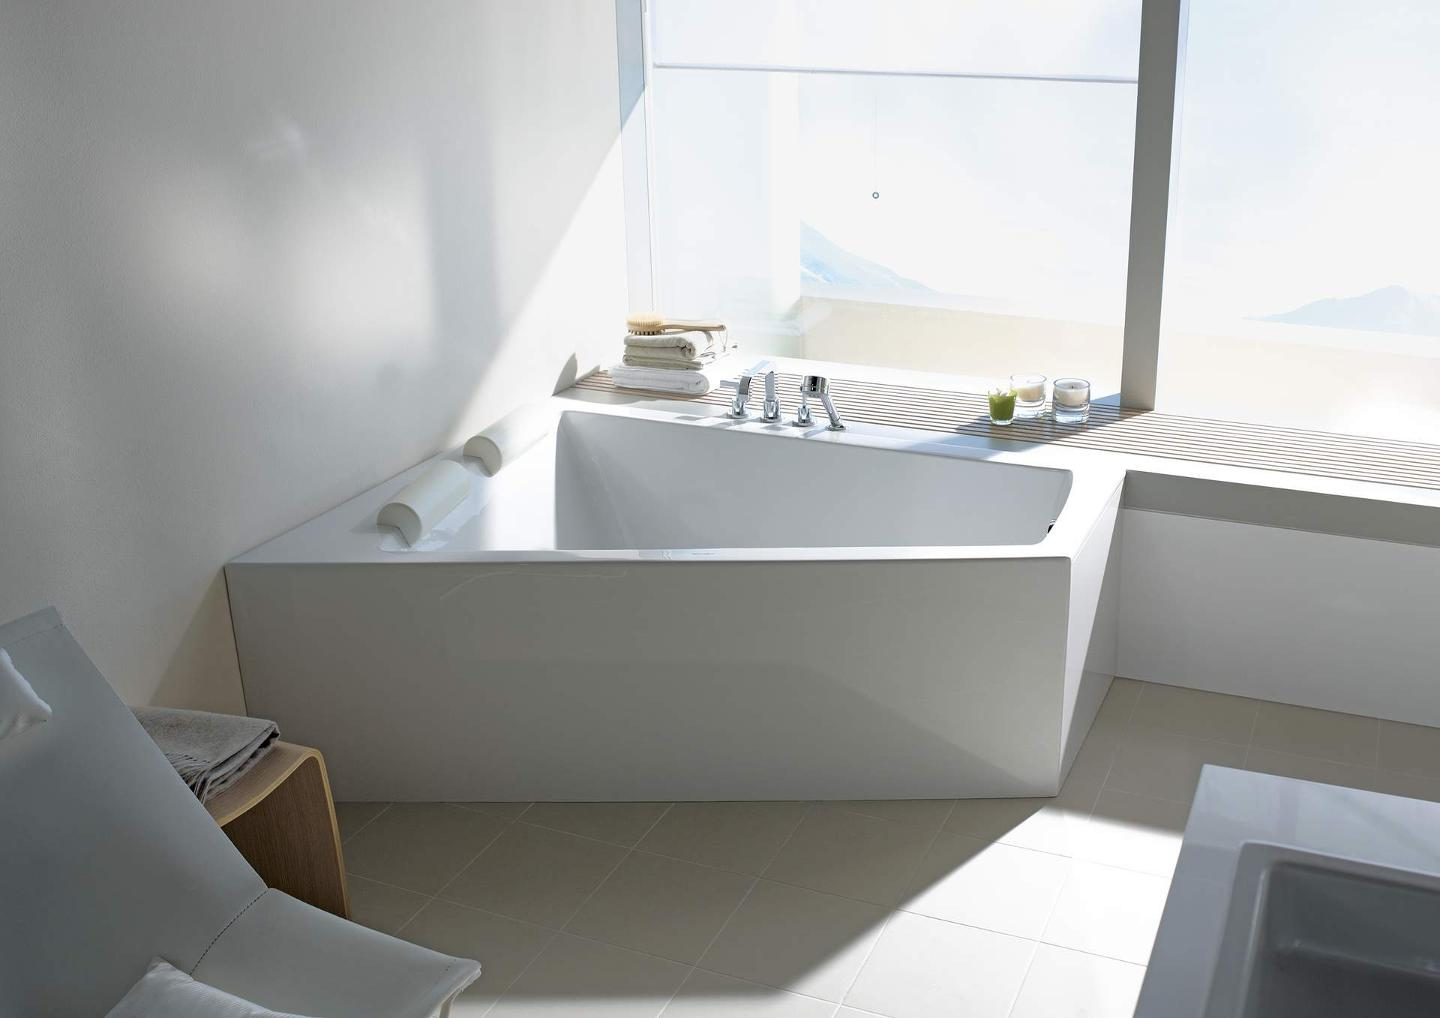 of x wooden sink full bathtub me by bathroom tub duravit size with elegant philippe starck for inlays trench bathtubs